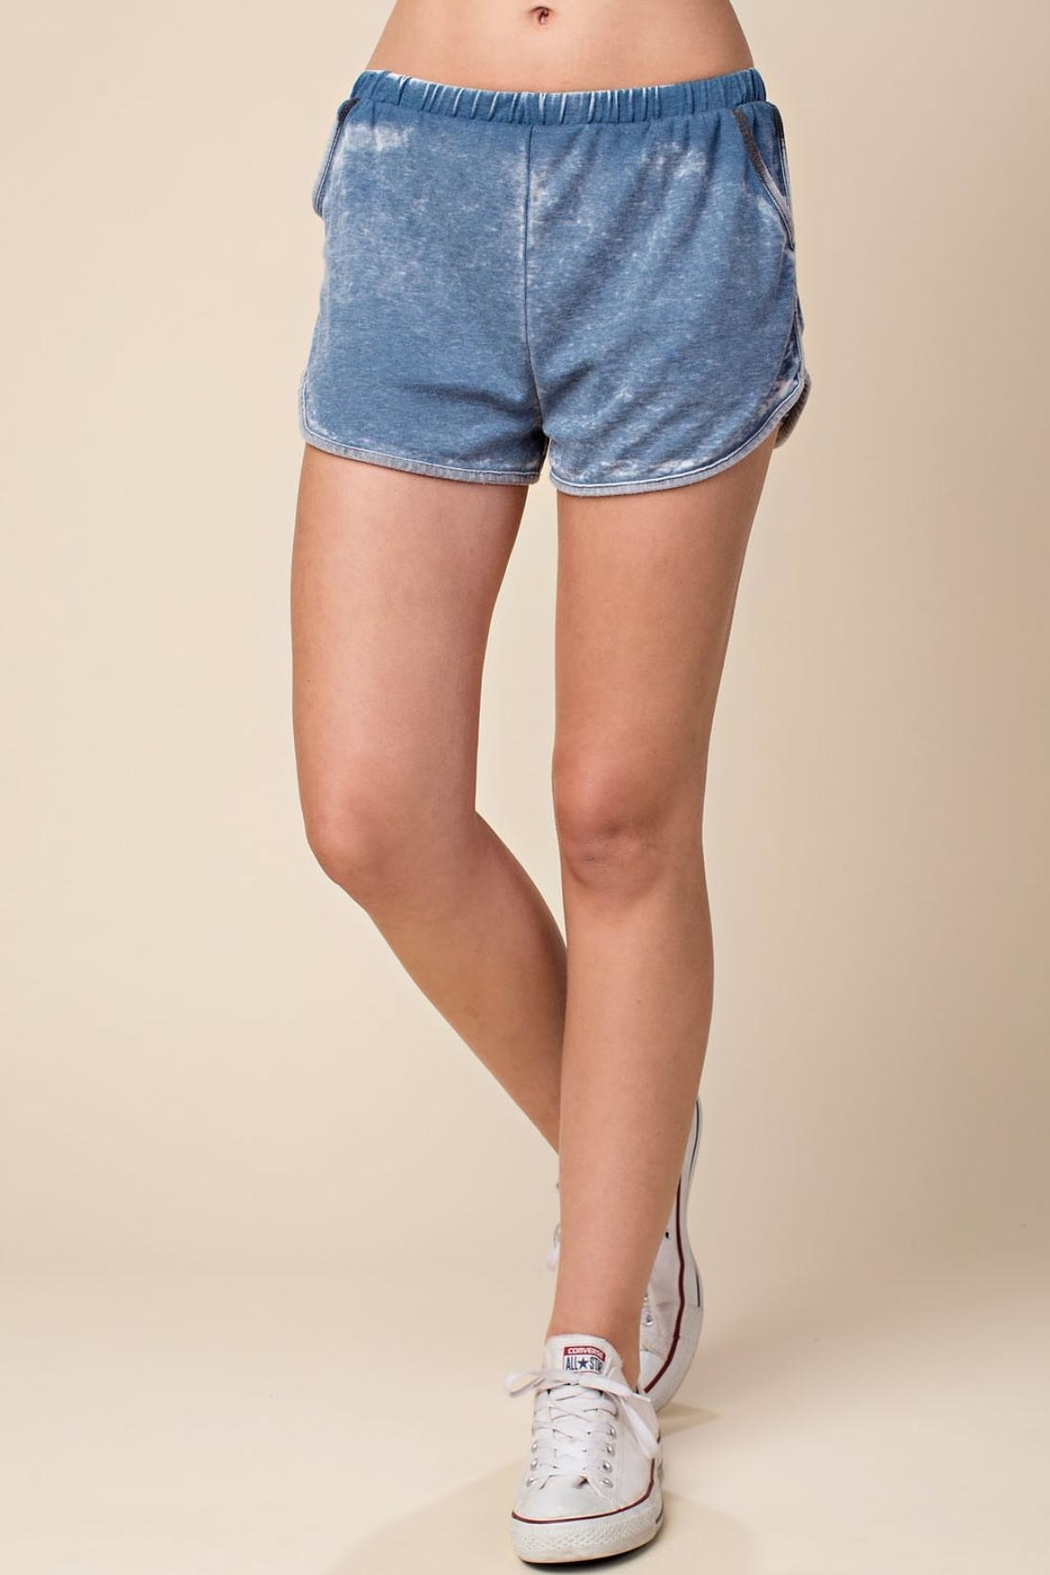 Wild Honey Elastic-Waist Dolphin Mini-Shorts - Main Image